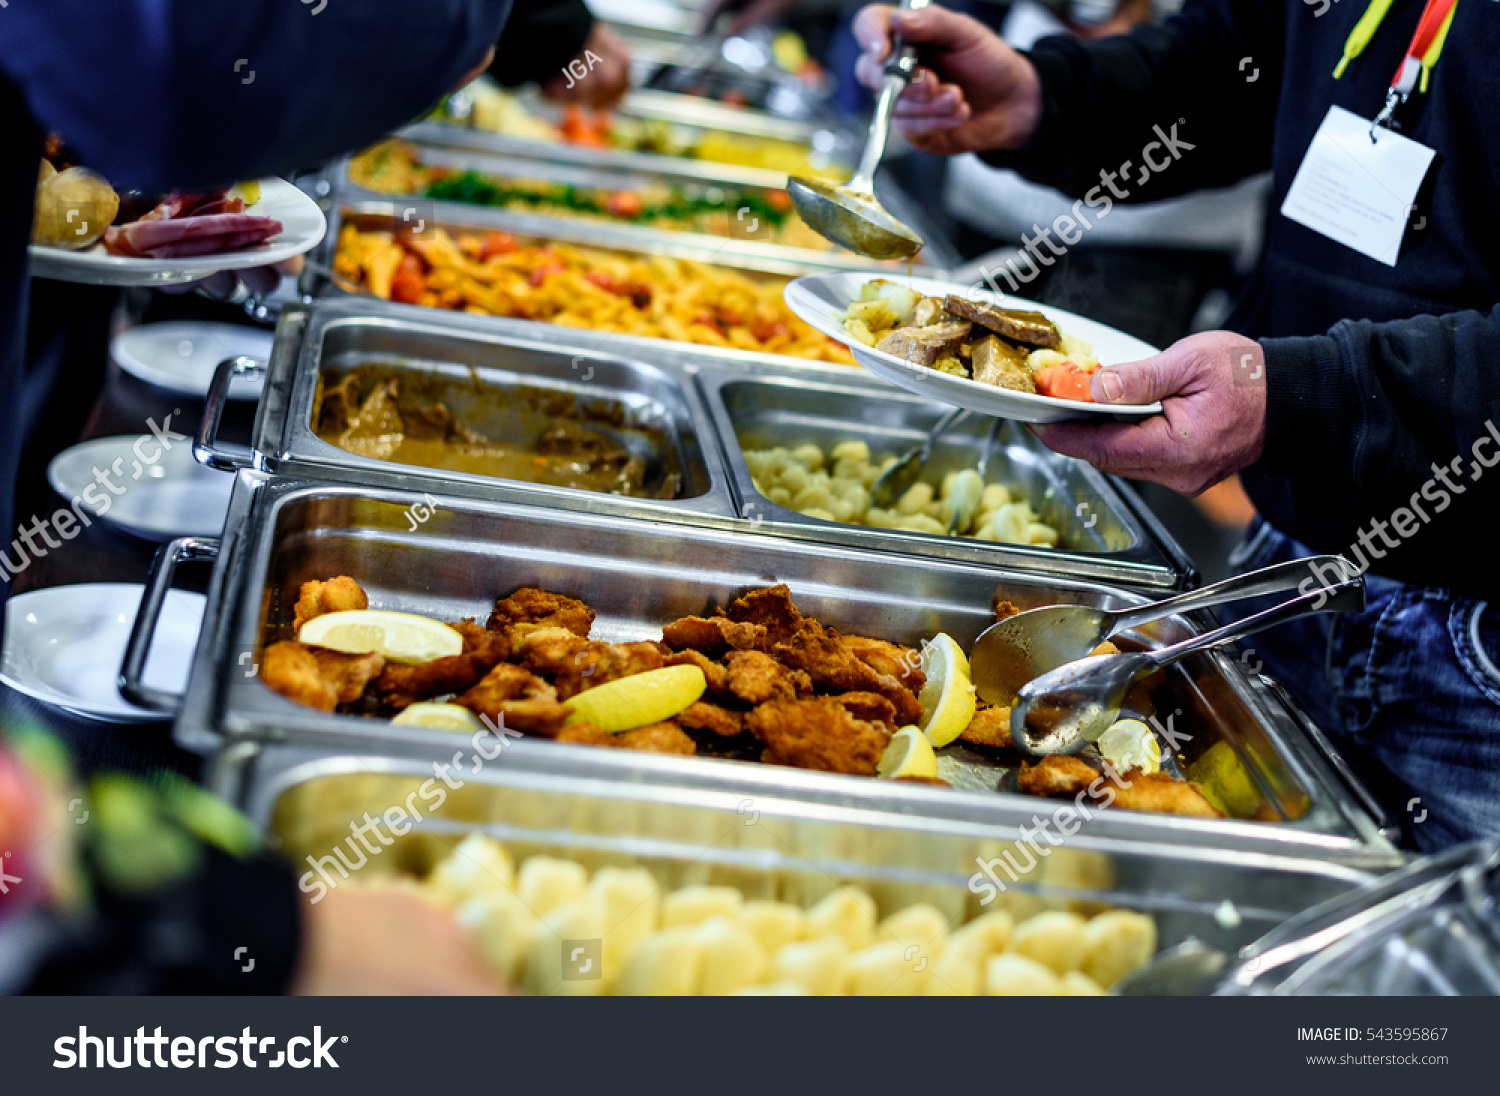 cuisine culinary buffet dinner catering dining stock photo 543595867 shutterstock. Black Bedroom Furniture Sets. Home Design Ideas